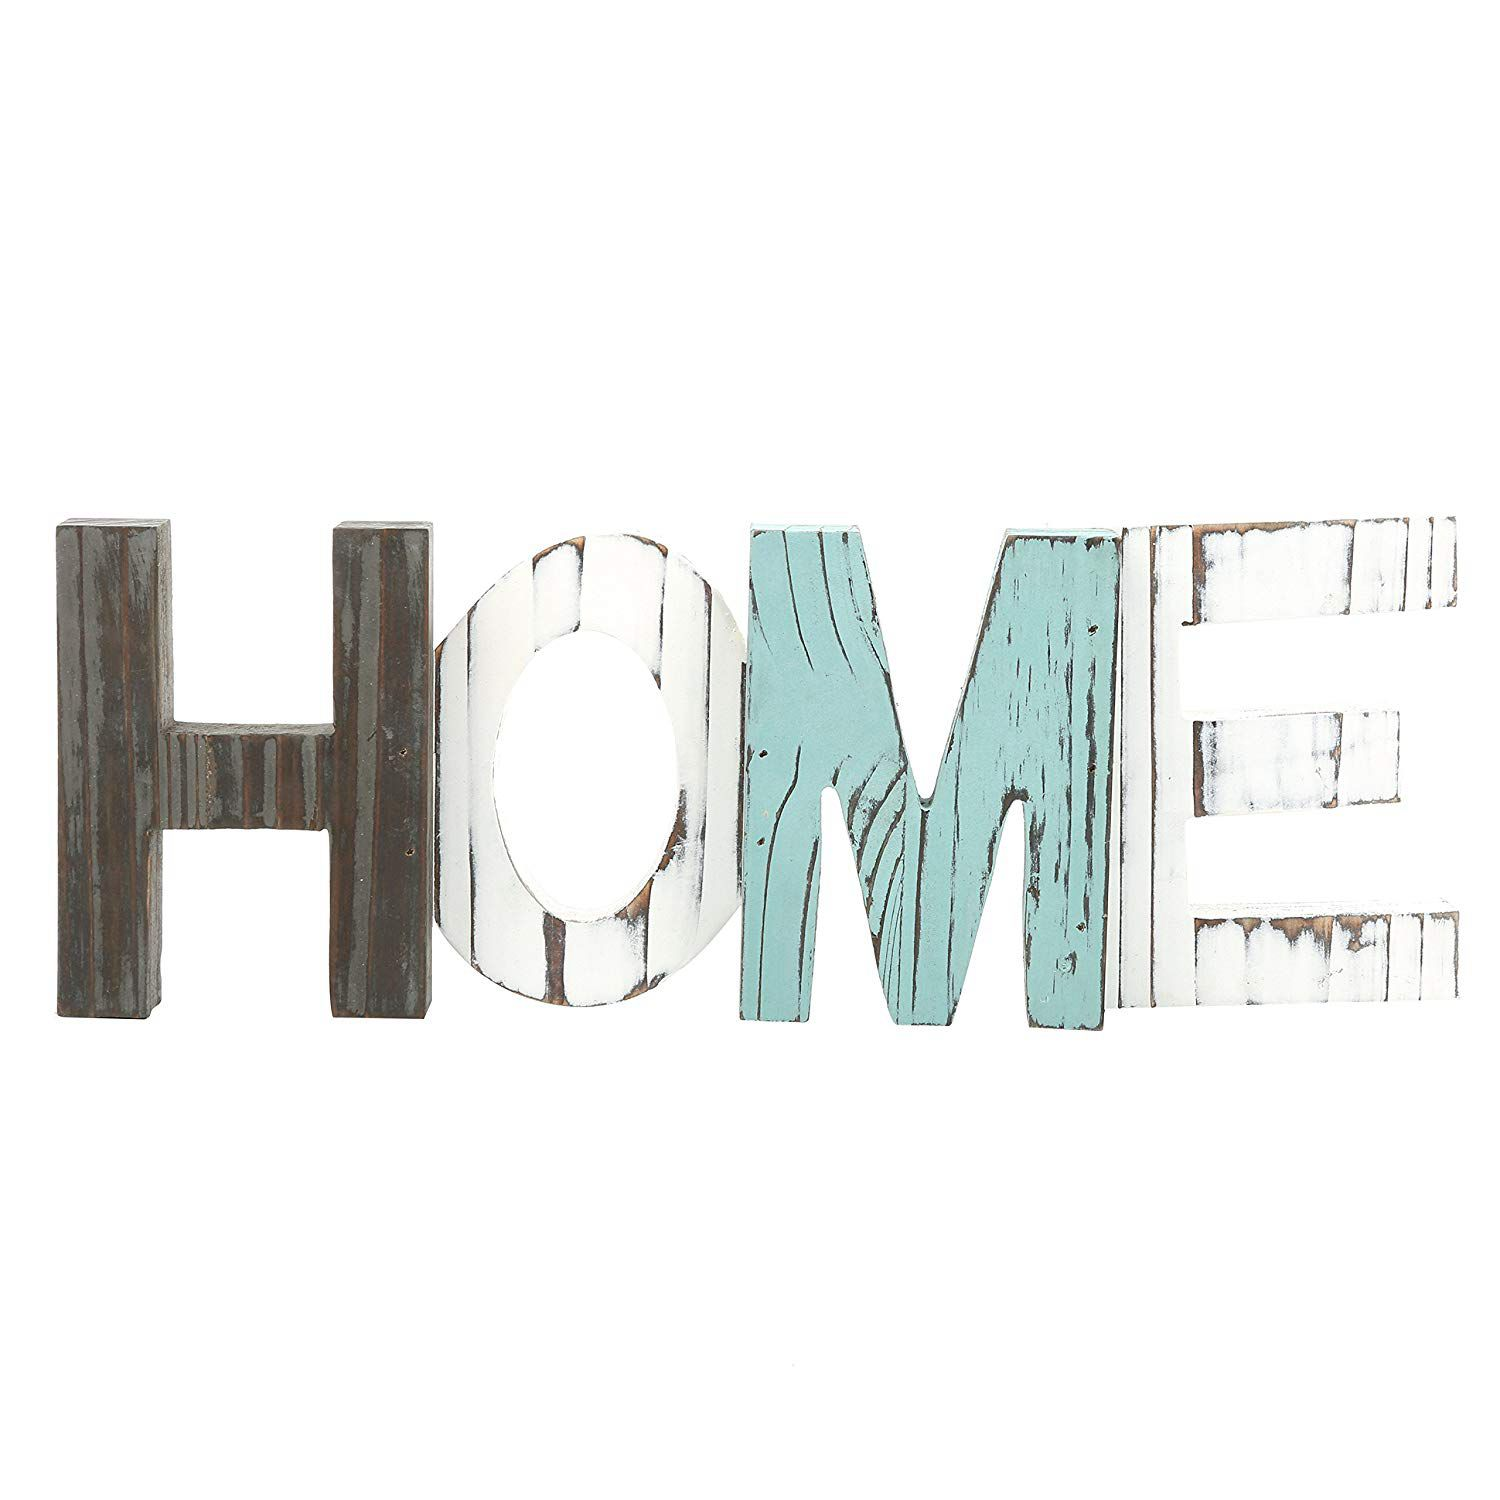 New-Rustic Wood Home Decorative Sign, Standing Cutout Word Decor, Multicolor